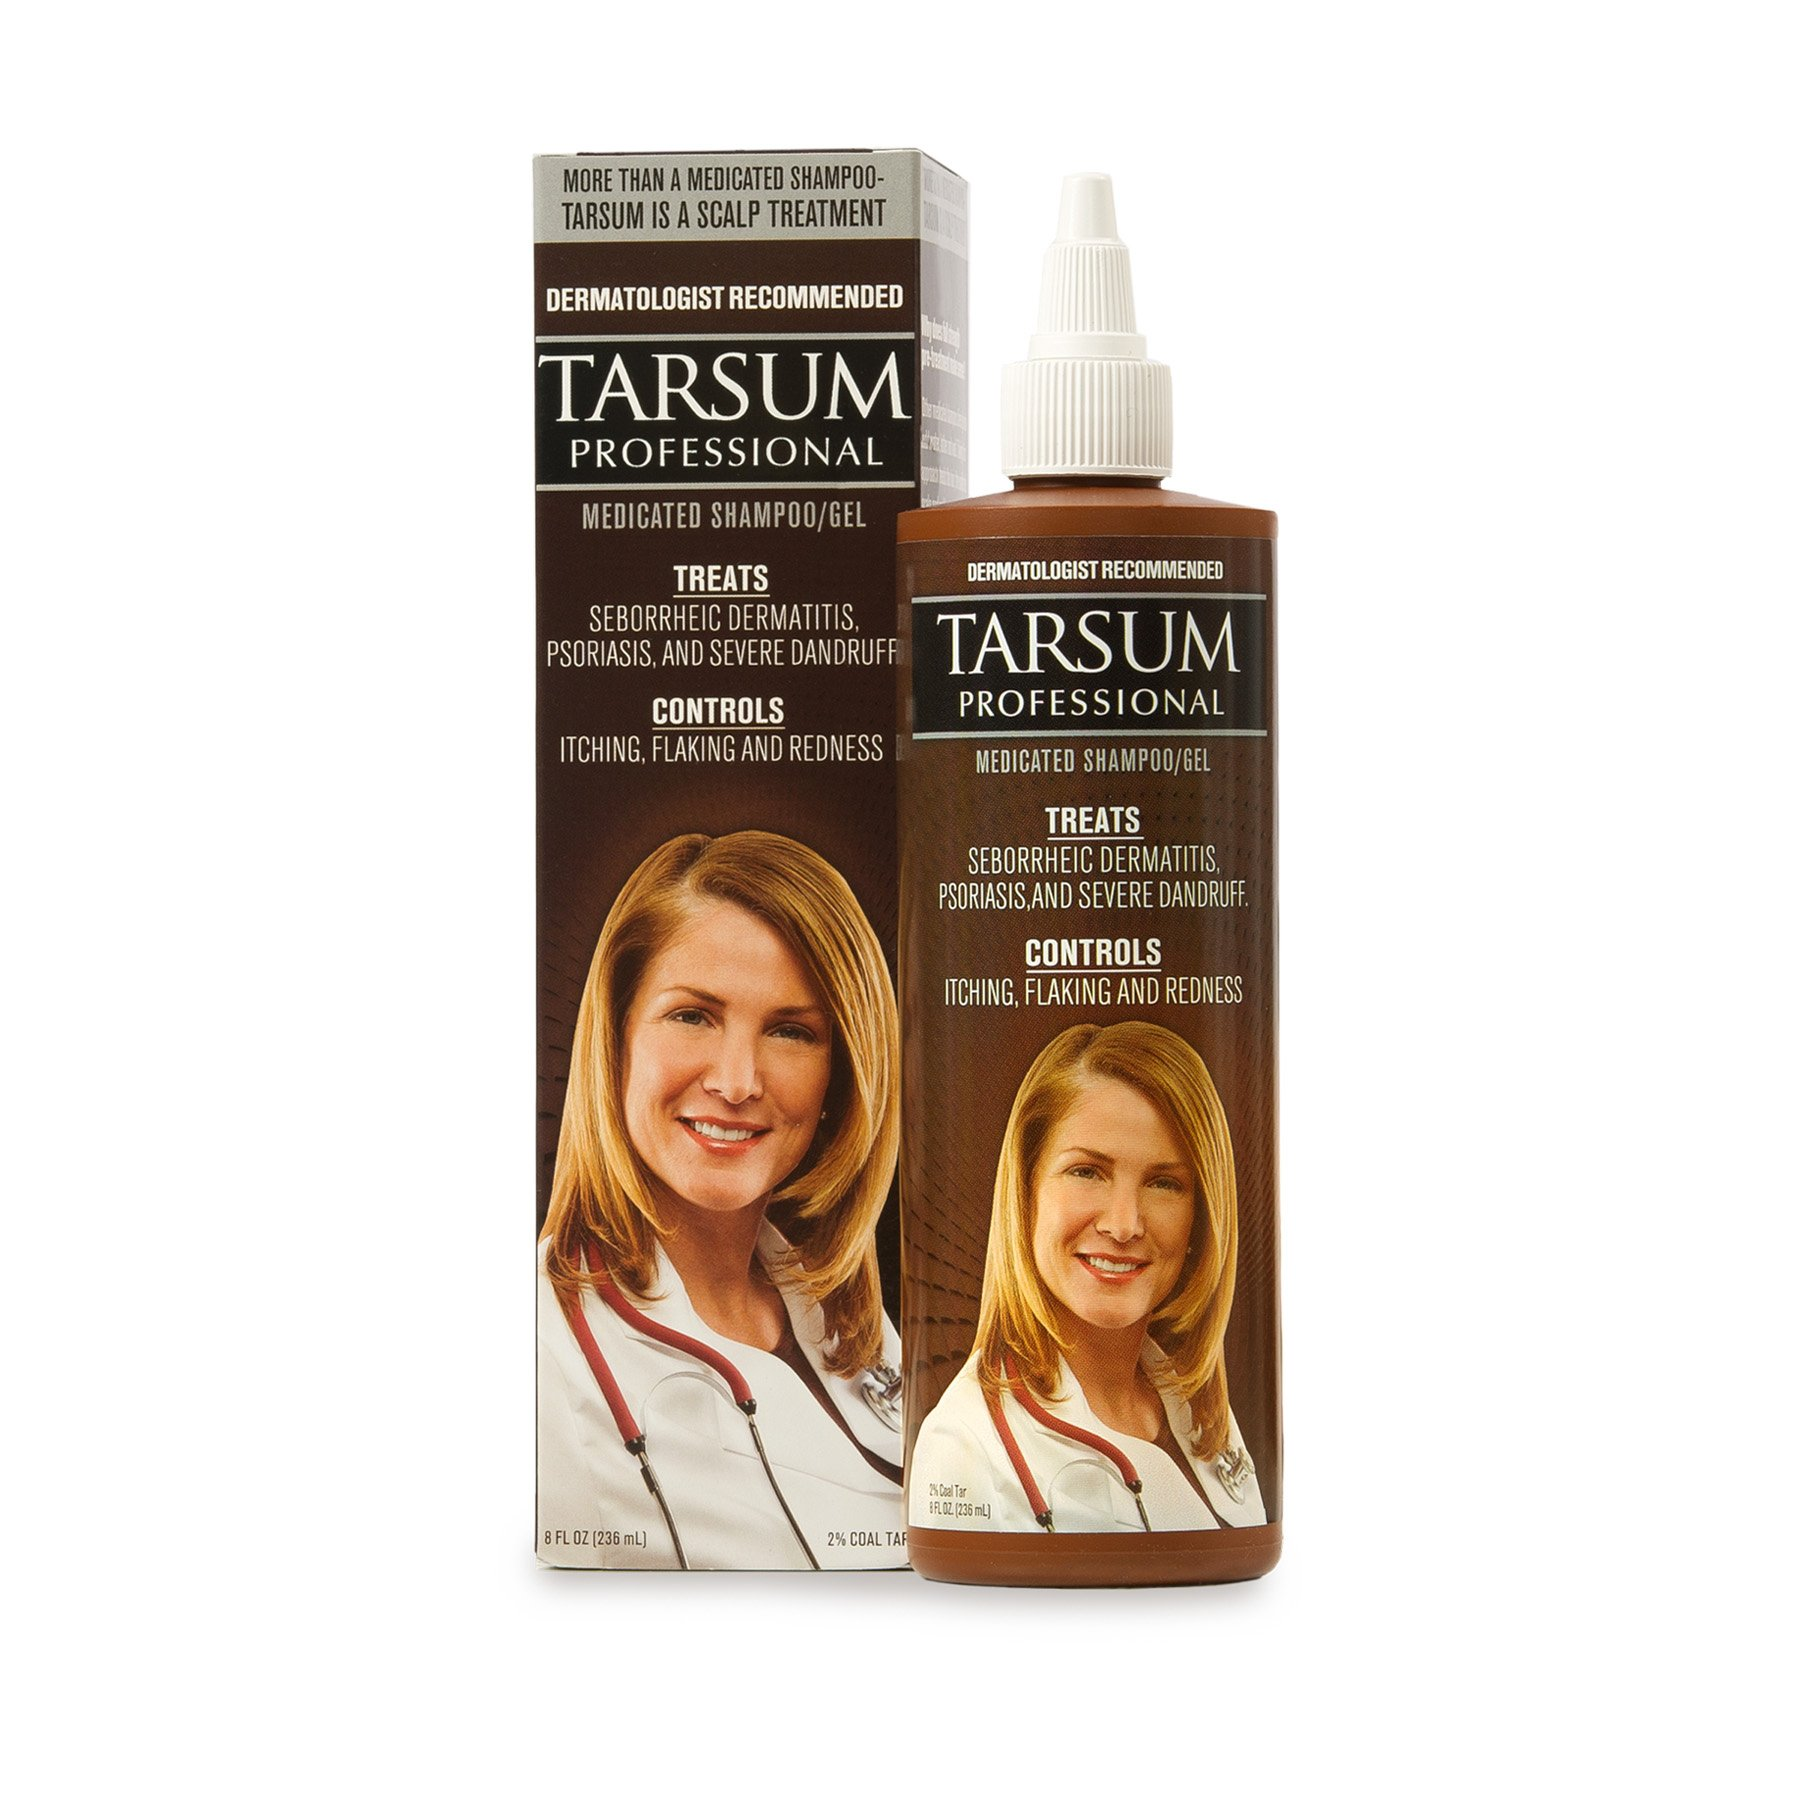 Tarsum Shampoo/Gel from Summers 8 Oz. by Summers Laboratories